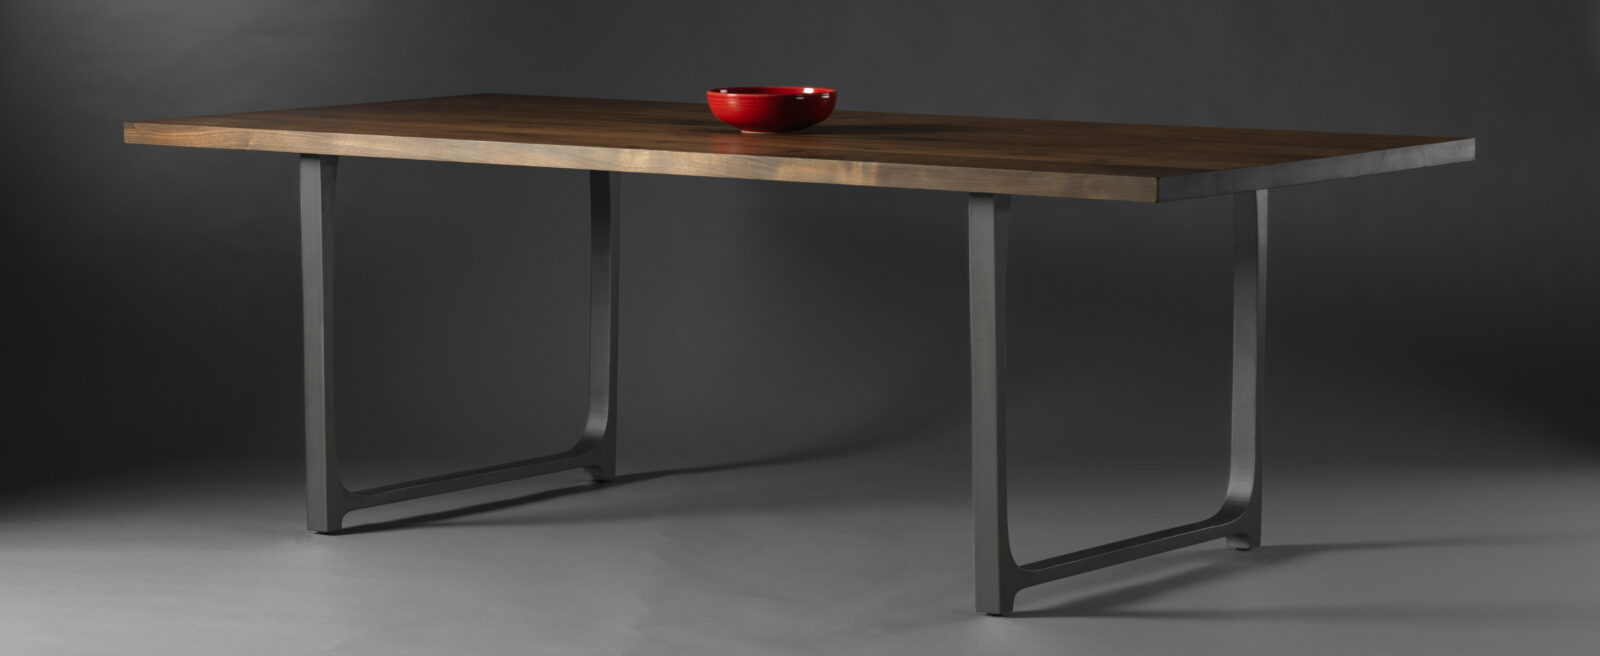 Superieur Ingot Dining Tables Are Custom Made In Portland, Oregon Using Solid Steel  And Hardwood. Available In Five Distinct Styles U2014 Talos, Argon, Carver, ...